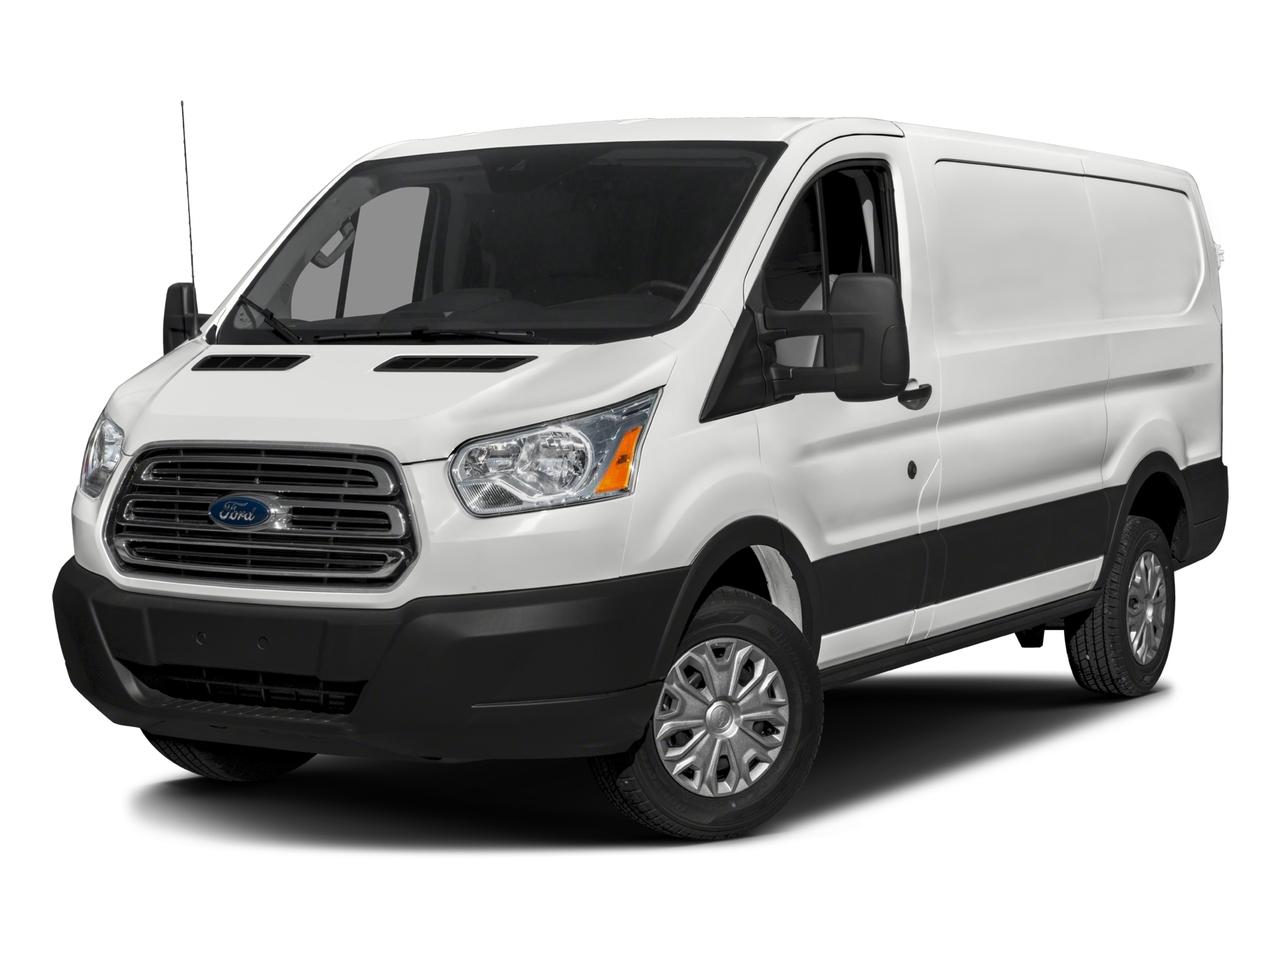 2017 Ford Transit Van Vehicle Photo in Gardner, MA 01440